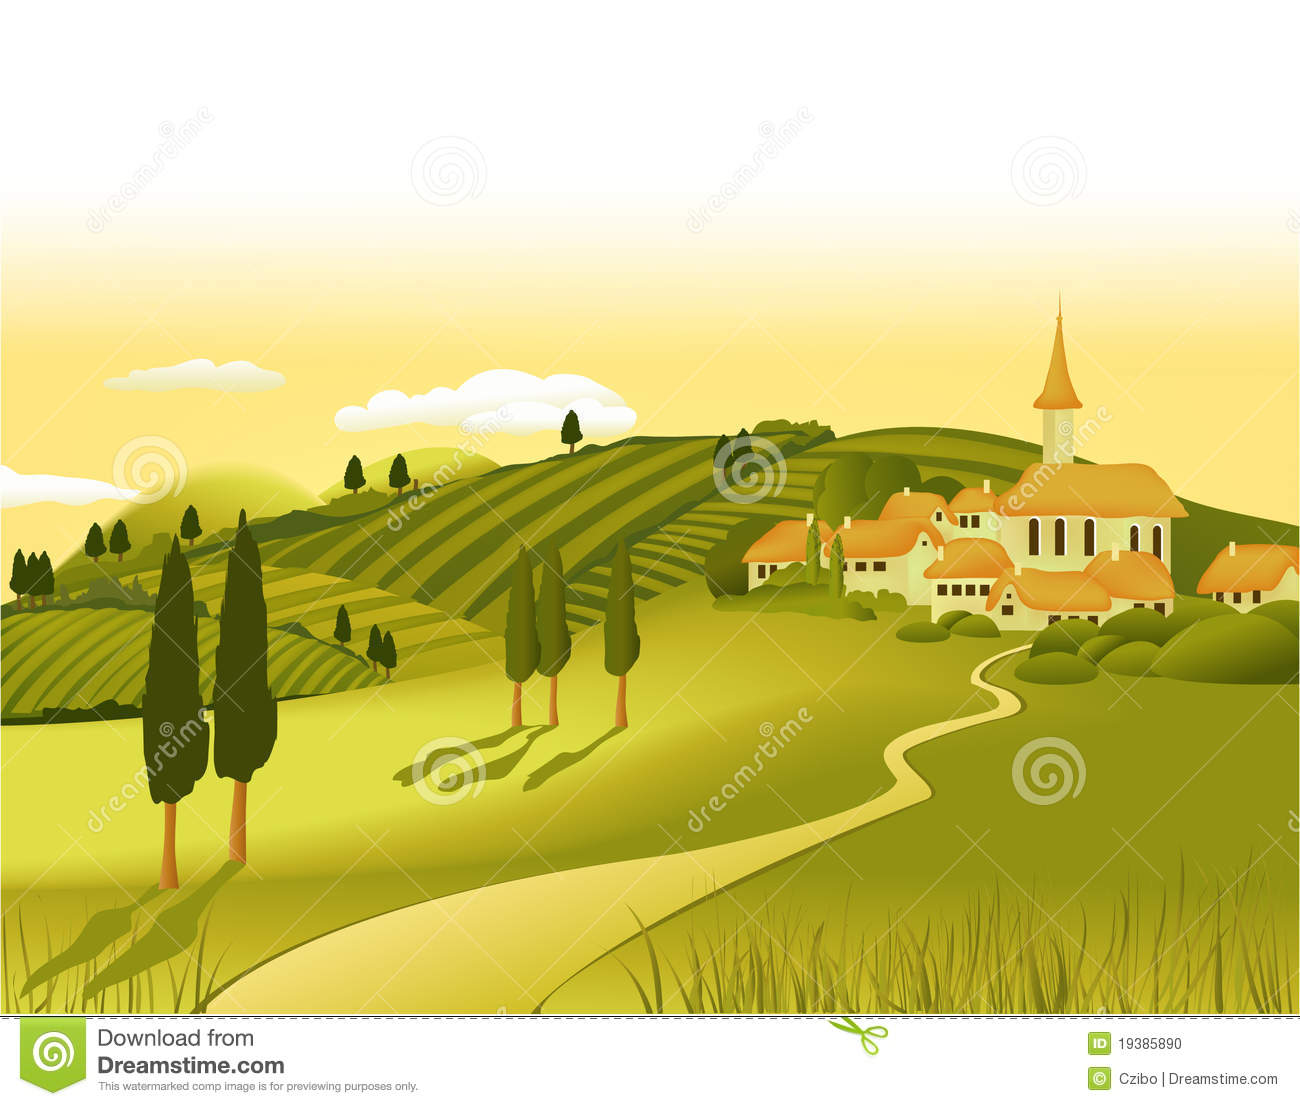 Town And Country Toyota >> Rural landscape clipart - Clipground